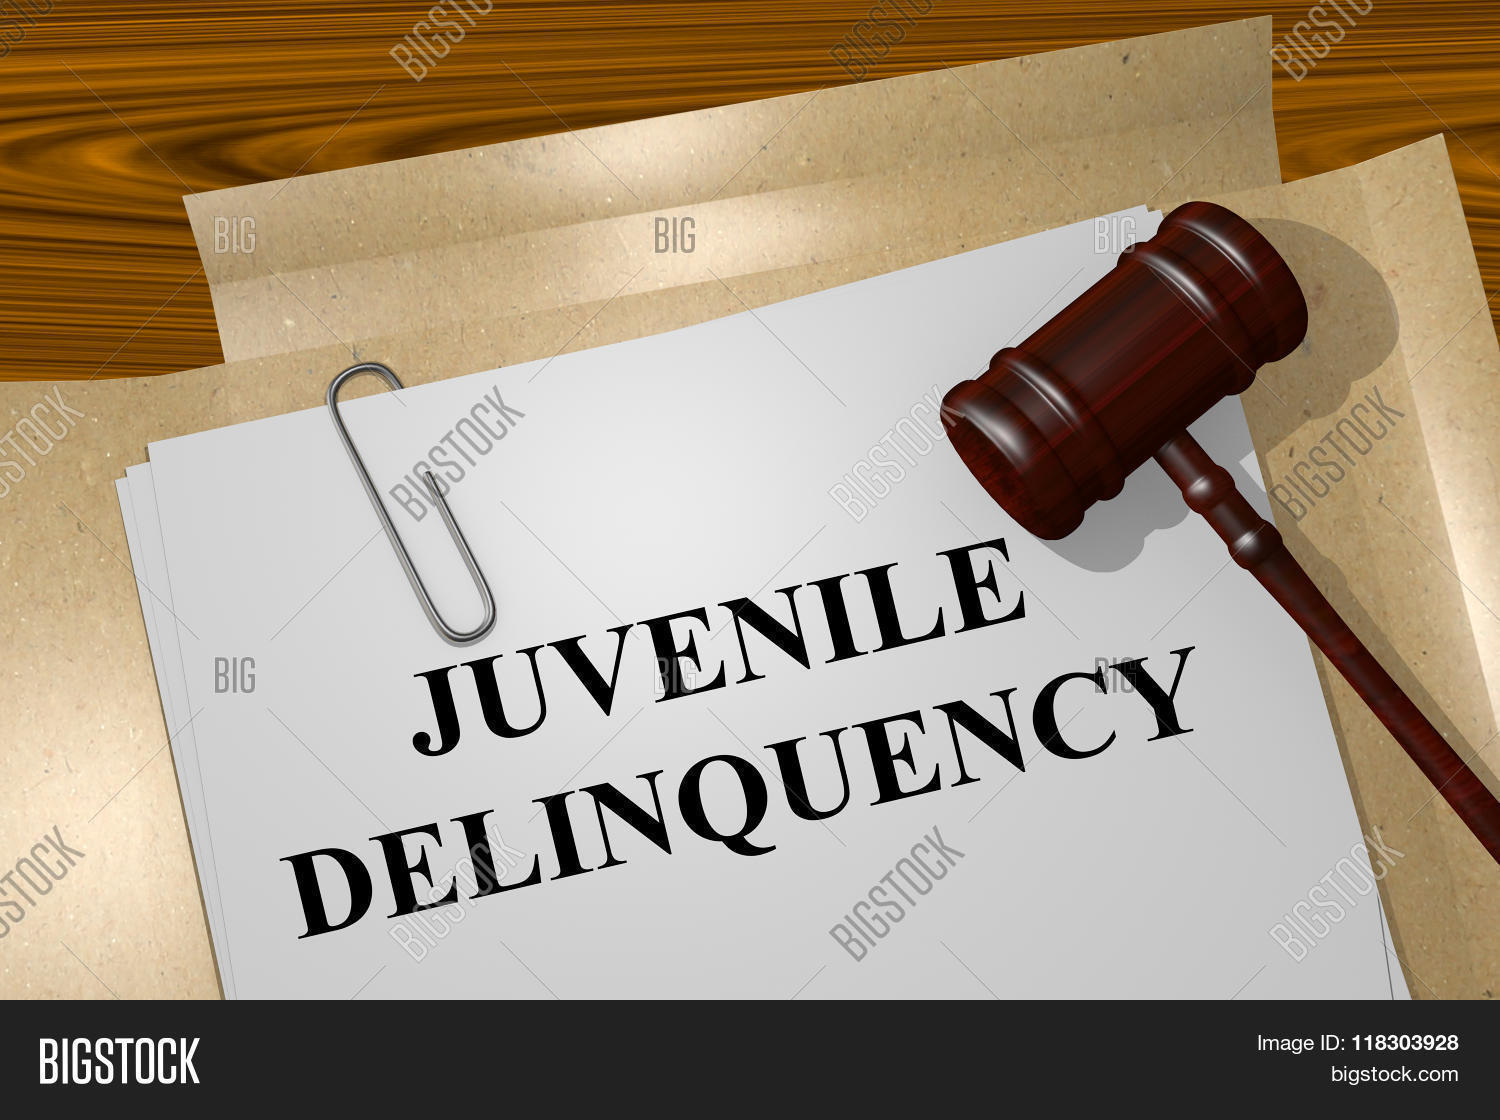 female juvenile delinquency The coalition for juvenile justice (cjj) envisions a nation where fewer children are at risk of delinquency and if they are at risk or involved with the justice system, they and their families receive every possible opportunity to live safe, healthy and fulfilling lives.